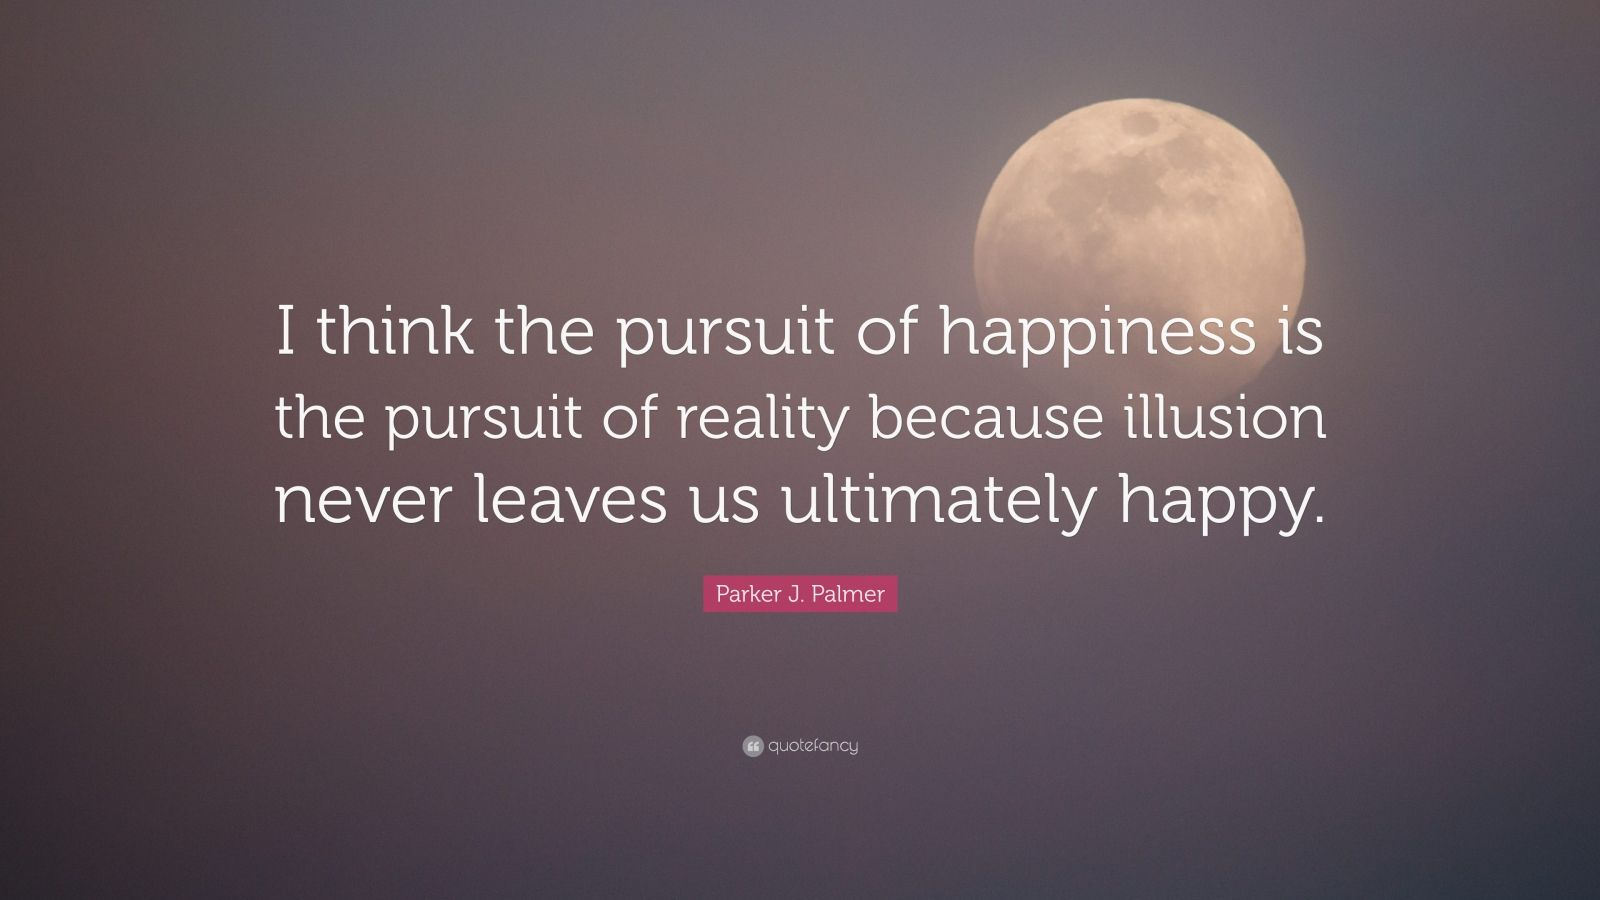 marx versus jefferson on the pursuit of happiness essay Read this essay on analysis american culture value through the film the pursuit of happiness come browse our large digital warehouse of free sample essays get the knowledge you need in order to pass your classes and more.